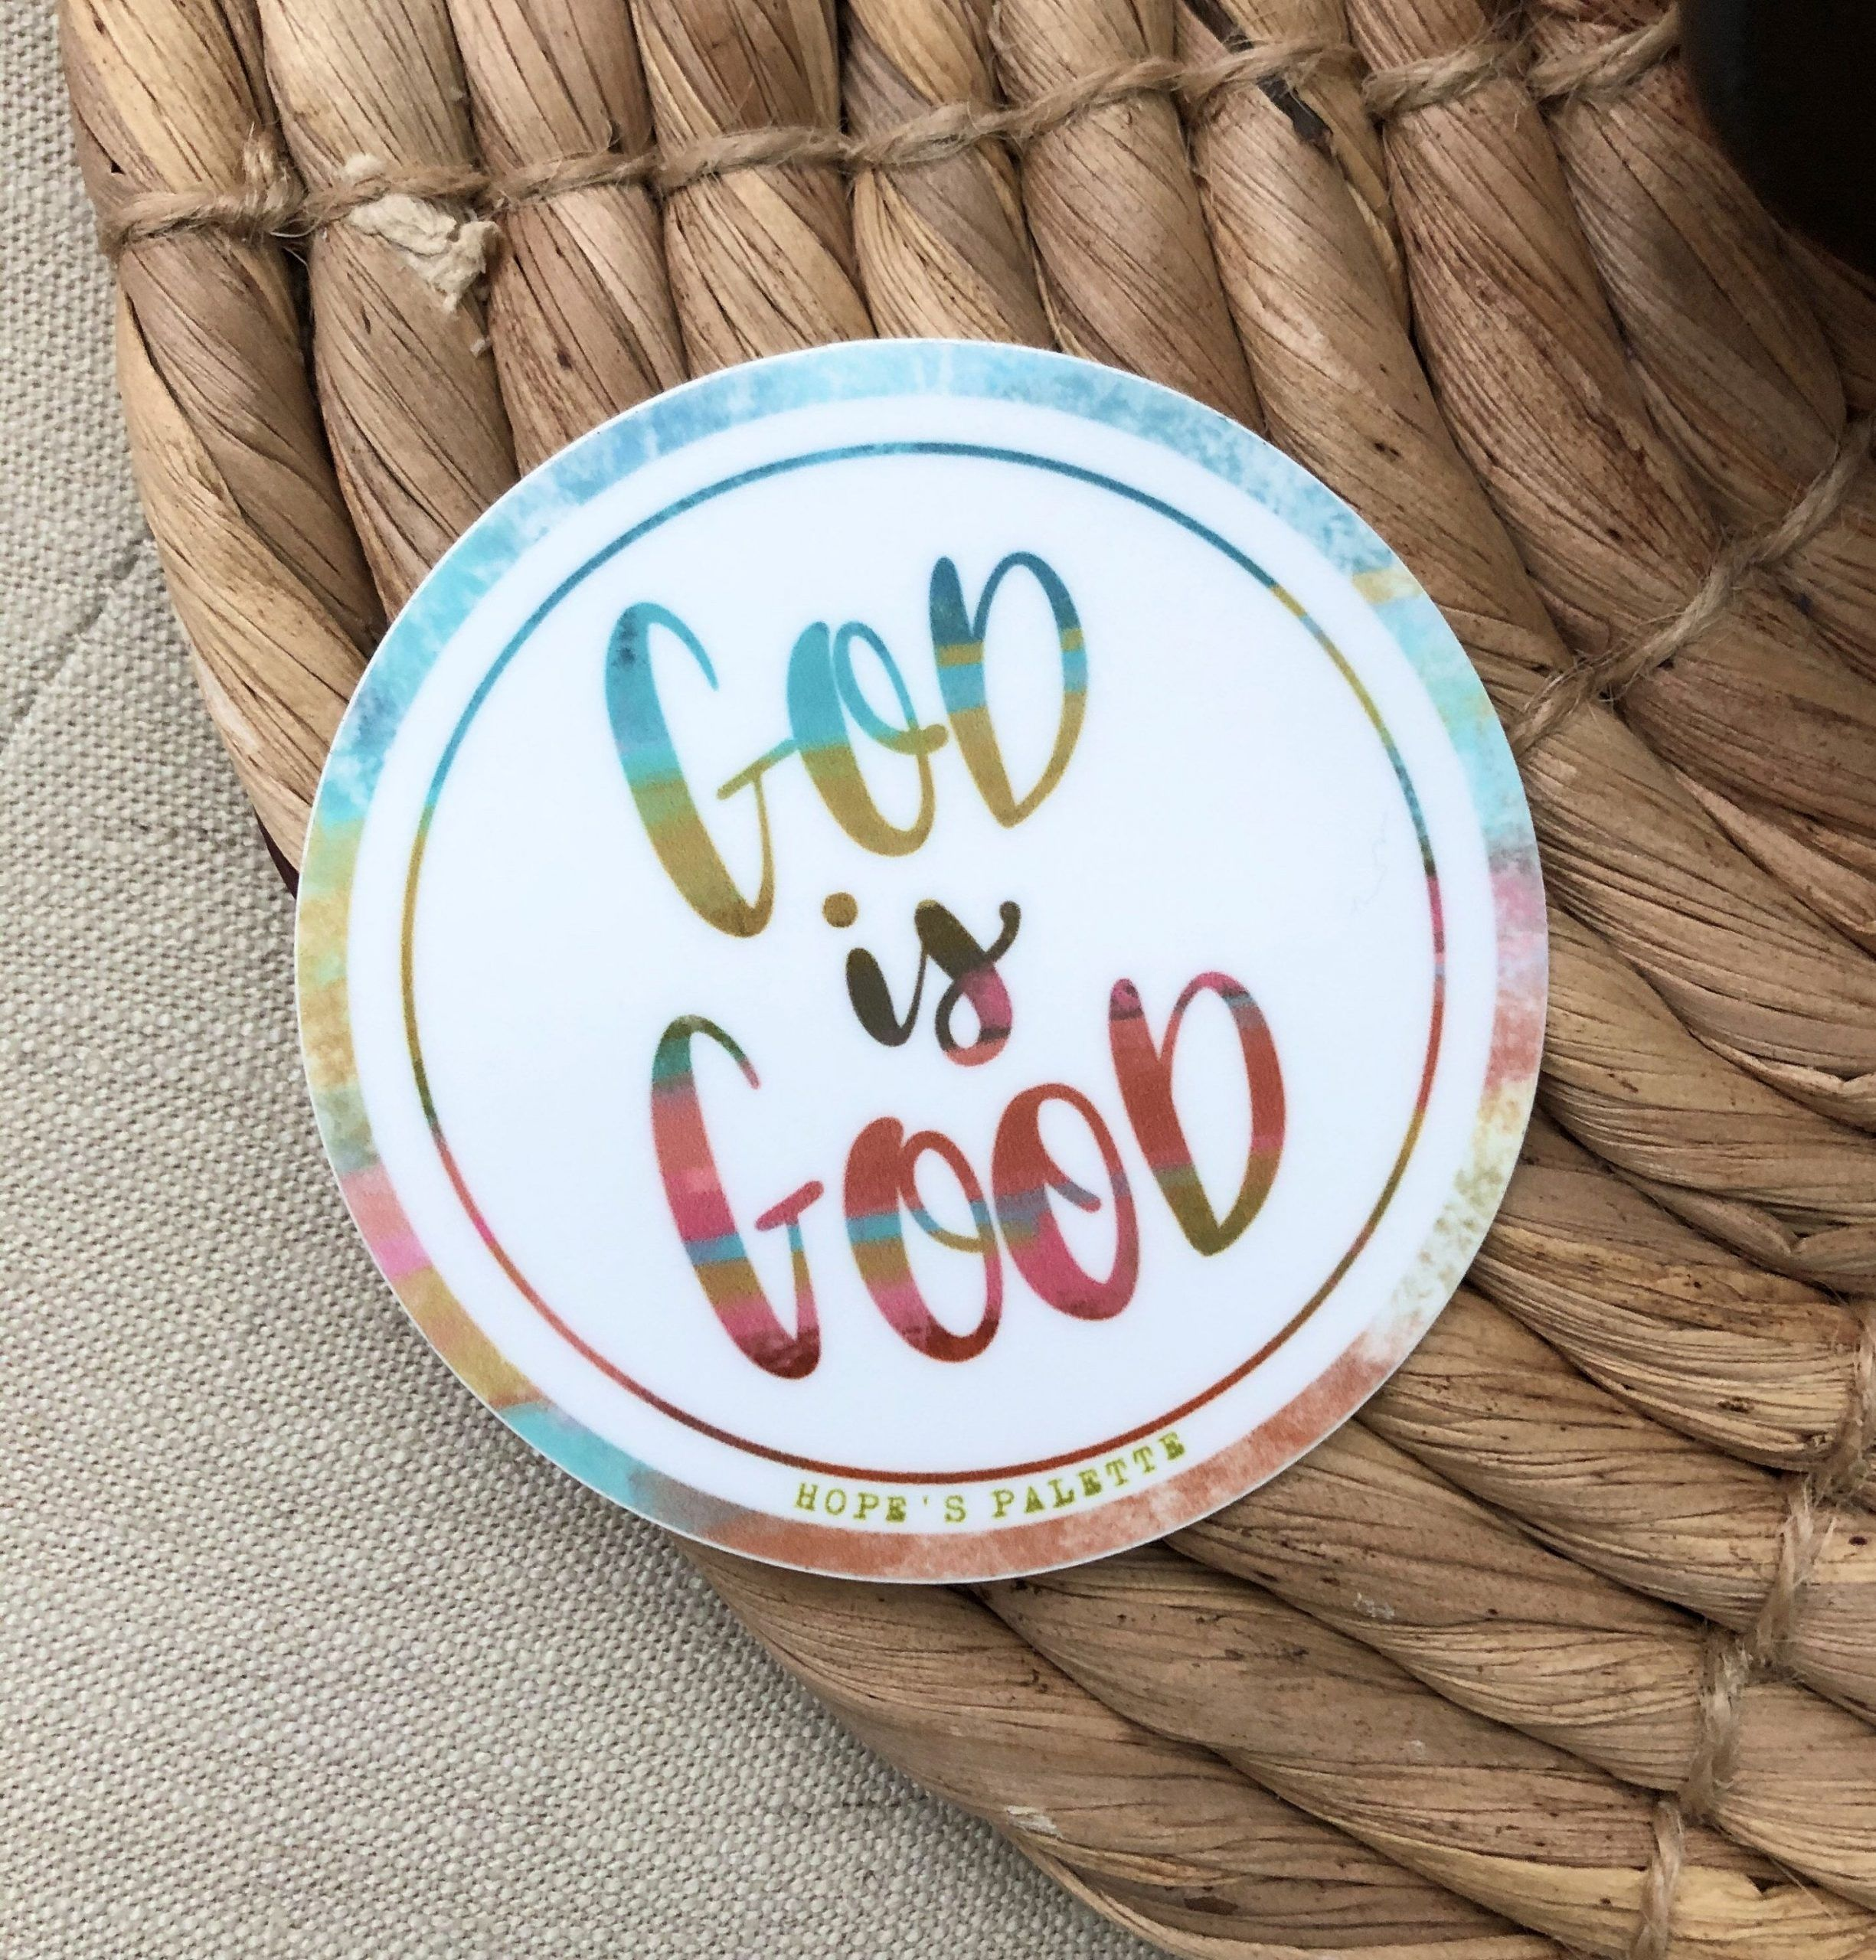 God Is Good Laptop sticker Christian quote sticker weather proof and dishwasher safe stickerchristian